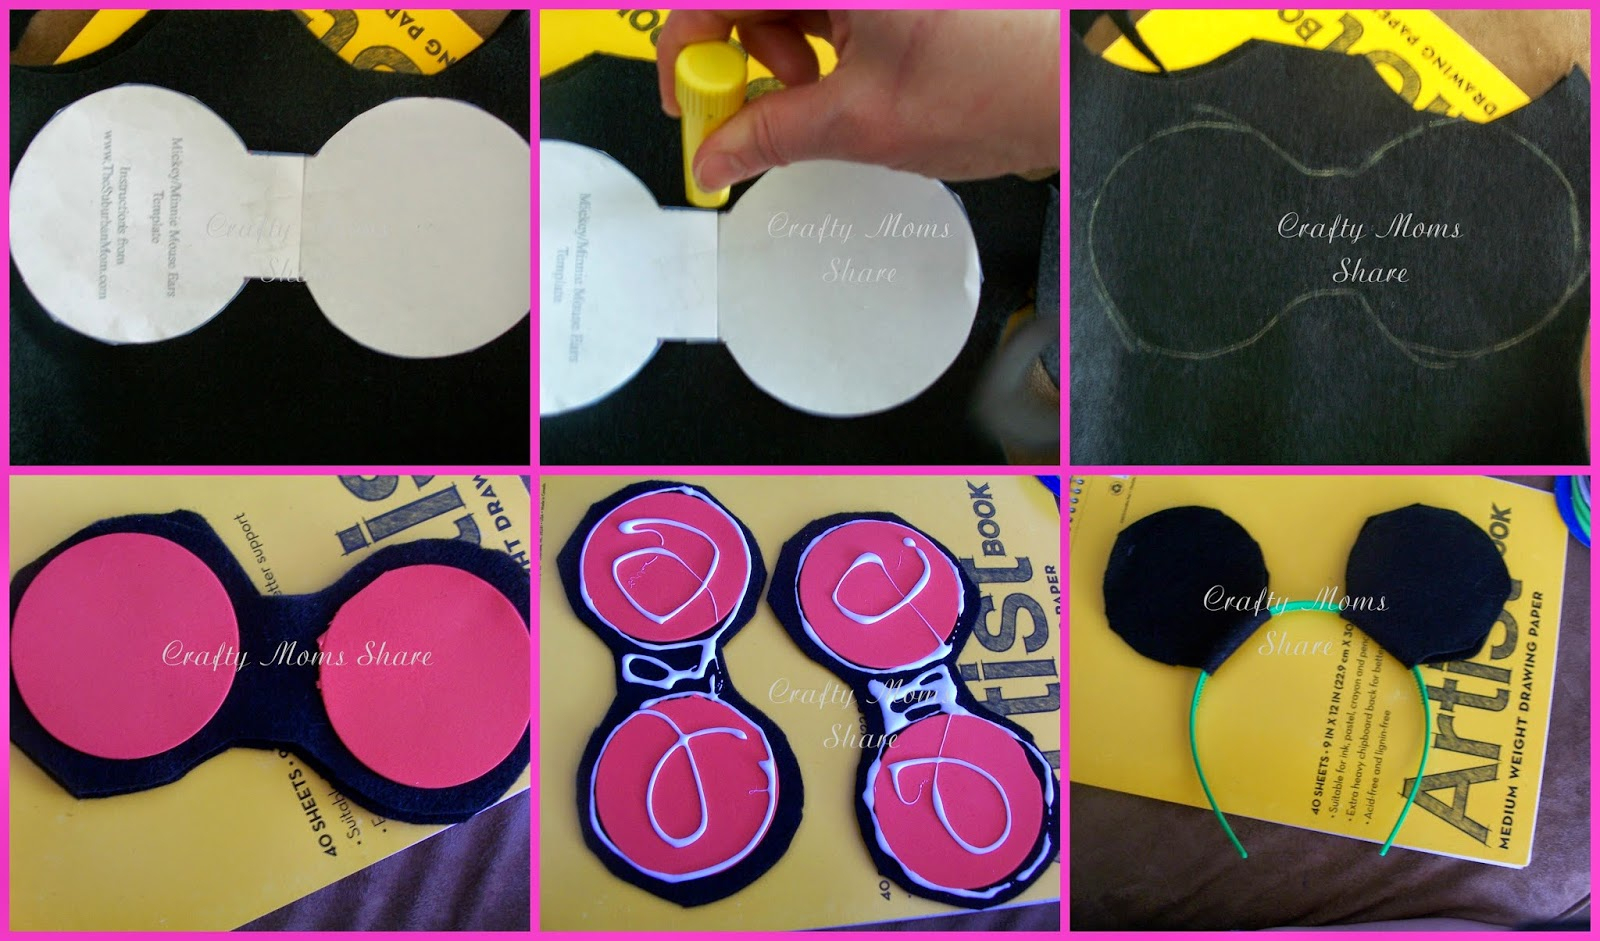 Crafty Moms Share: Diy Mickey And Minnie Mouse Ears And Free - Free Printable Minnie Mouse Ears Template